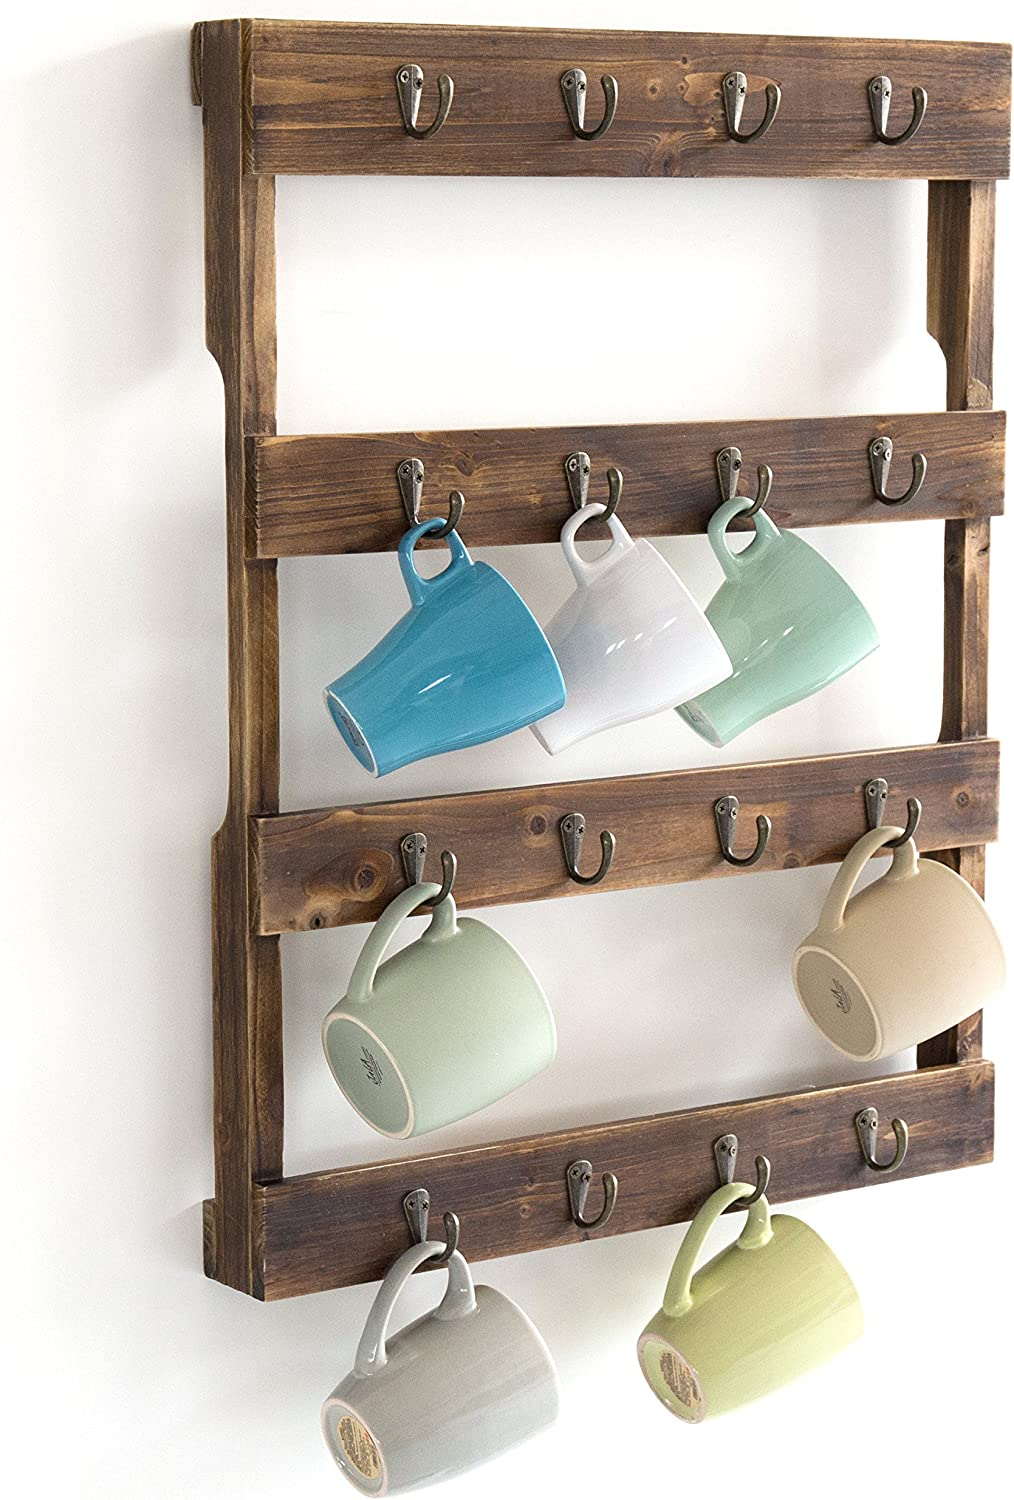 Wall Mounted 12 Hook Torched Wood Coffee Mug Cup Holder Display Rack